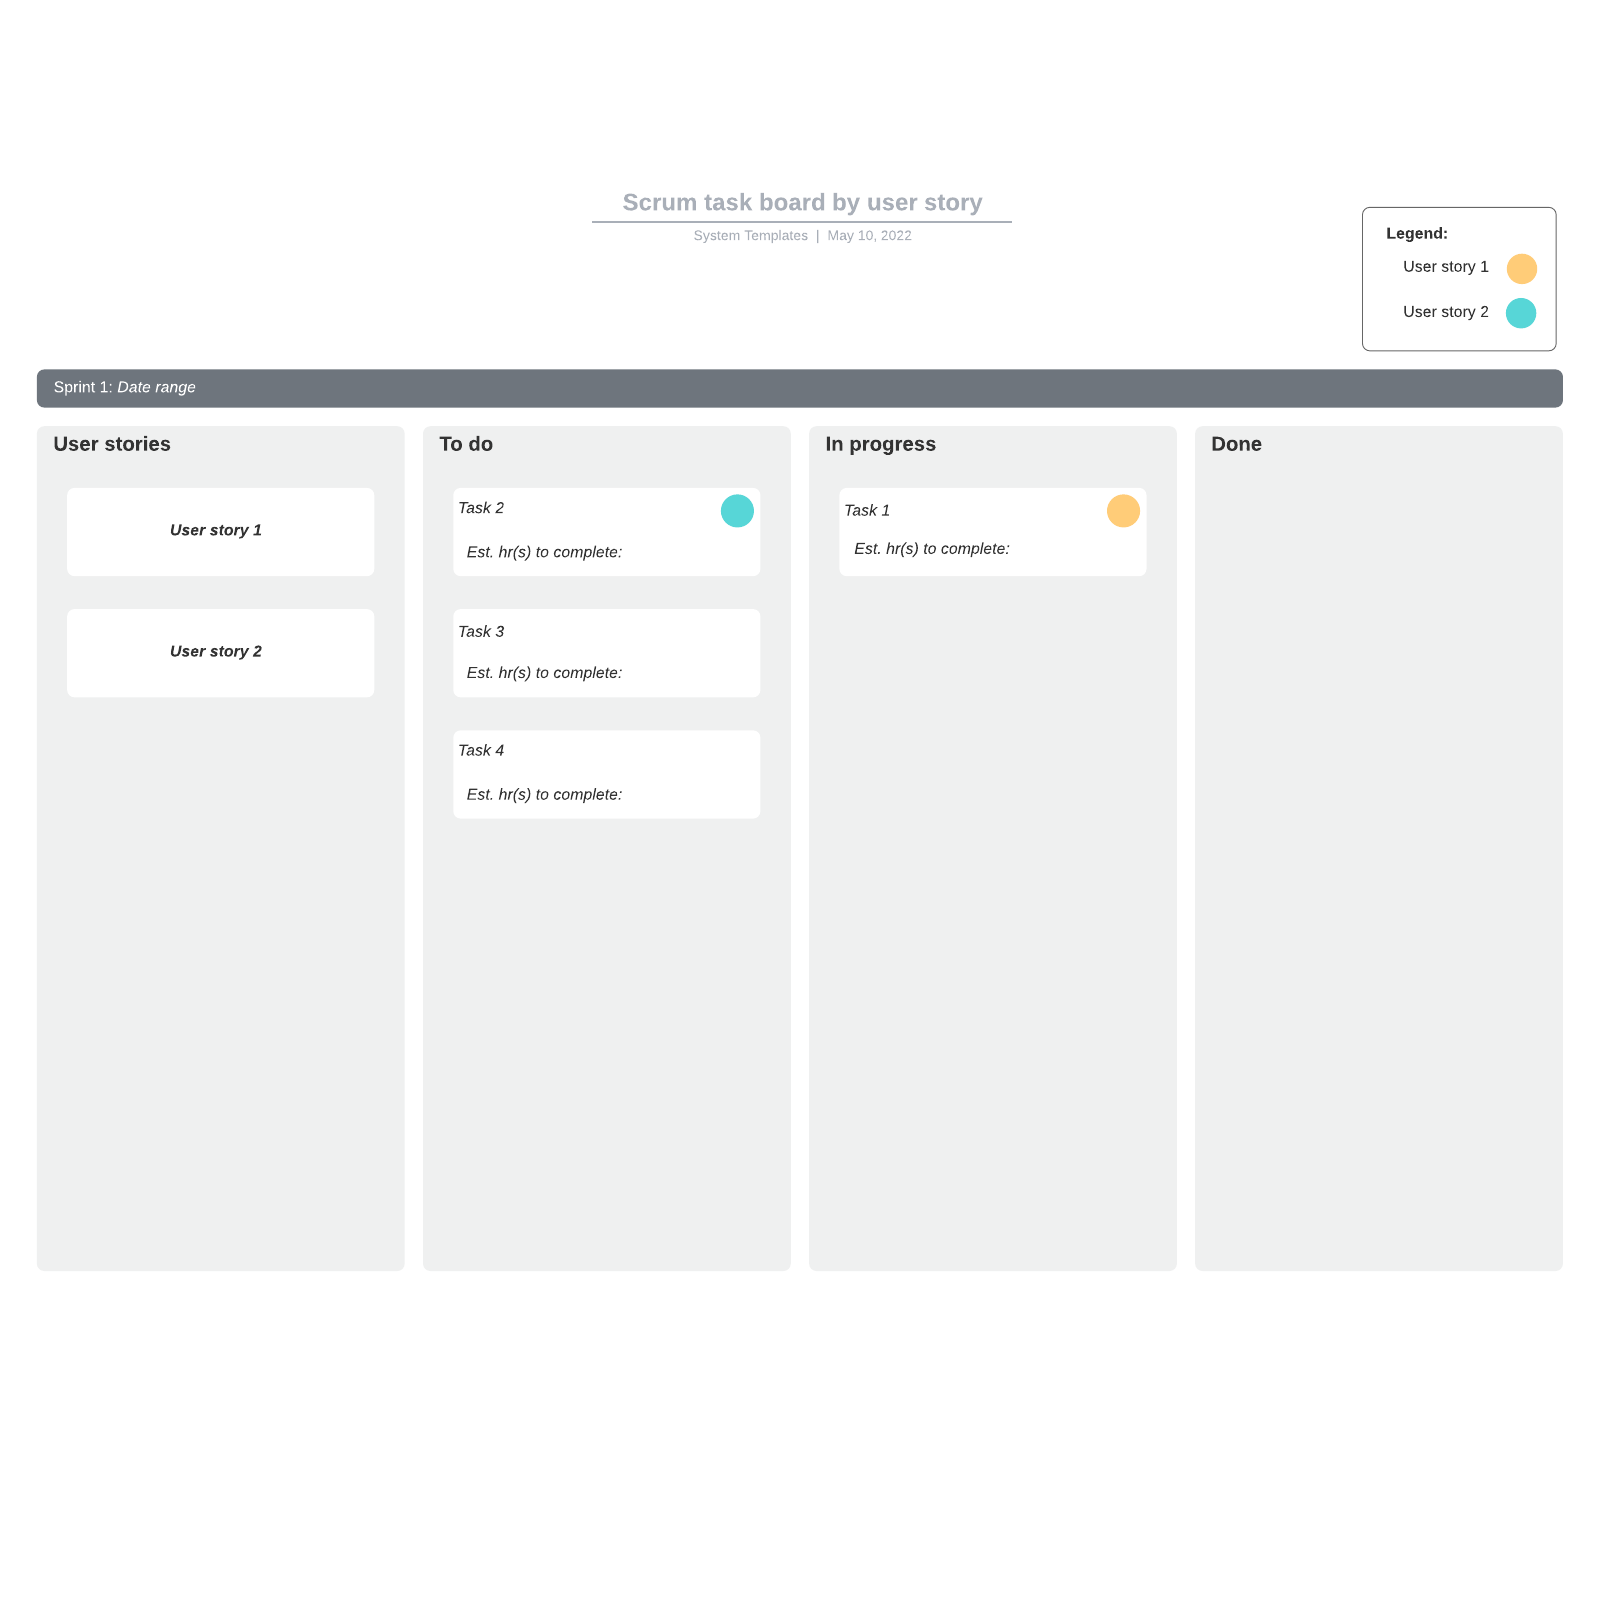 Scrum task board by user story